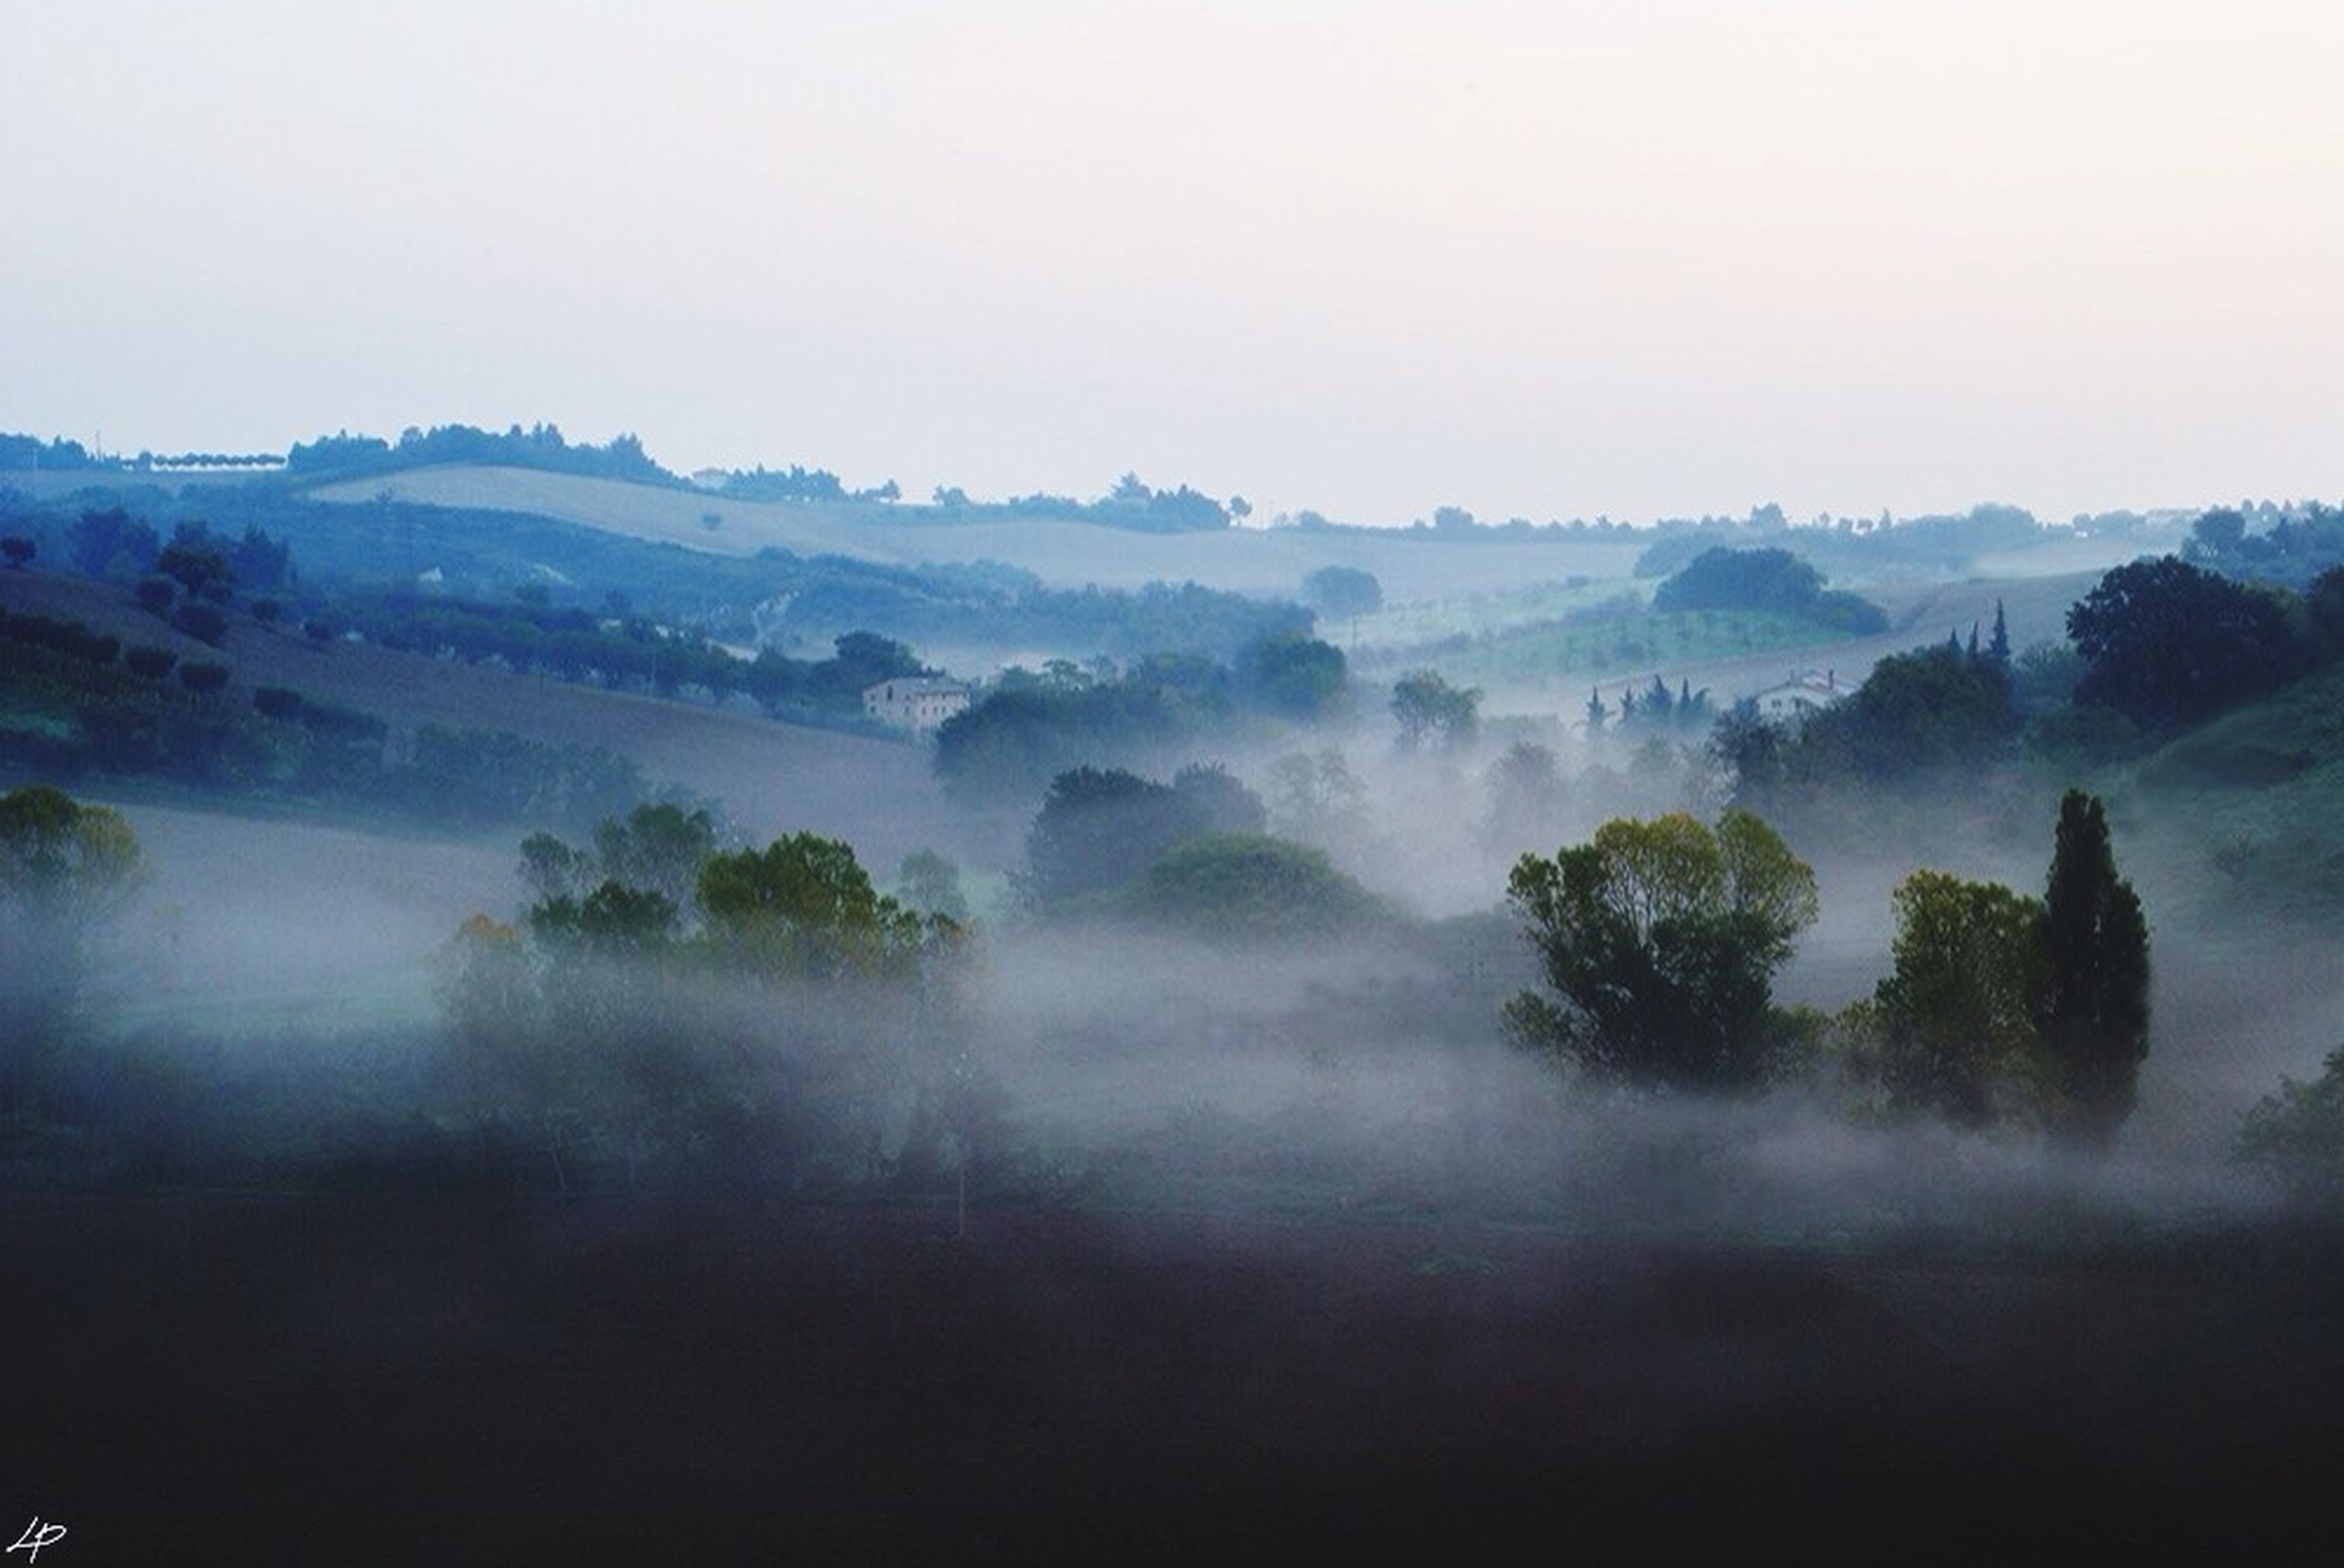 fog, tranquil scene, foggy, tranquility, scenics, beauty in nature, mountain, tree, landscape, nature, weather, mist, copy space, non-urban scene, sky, idyllic, mountain range, outdoors, growth